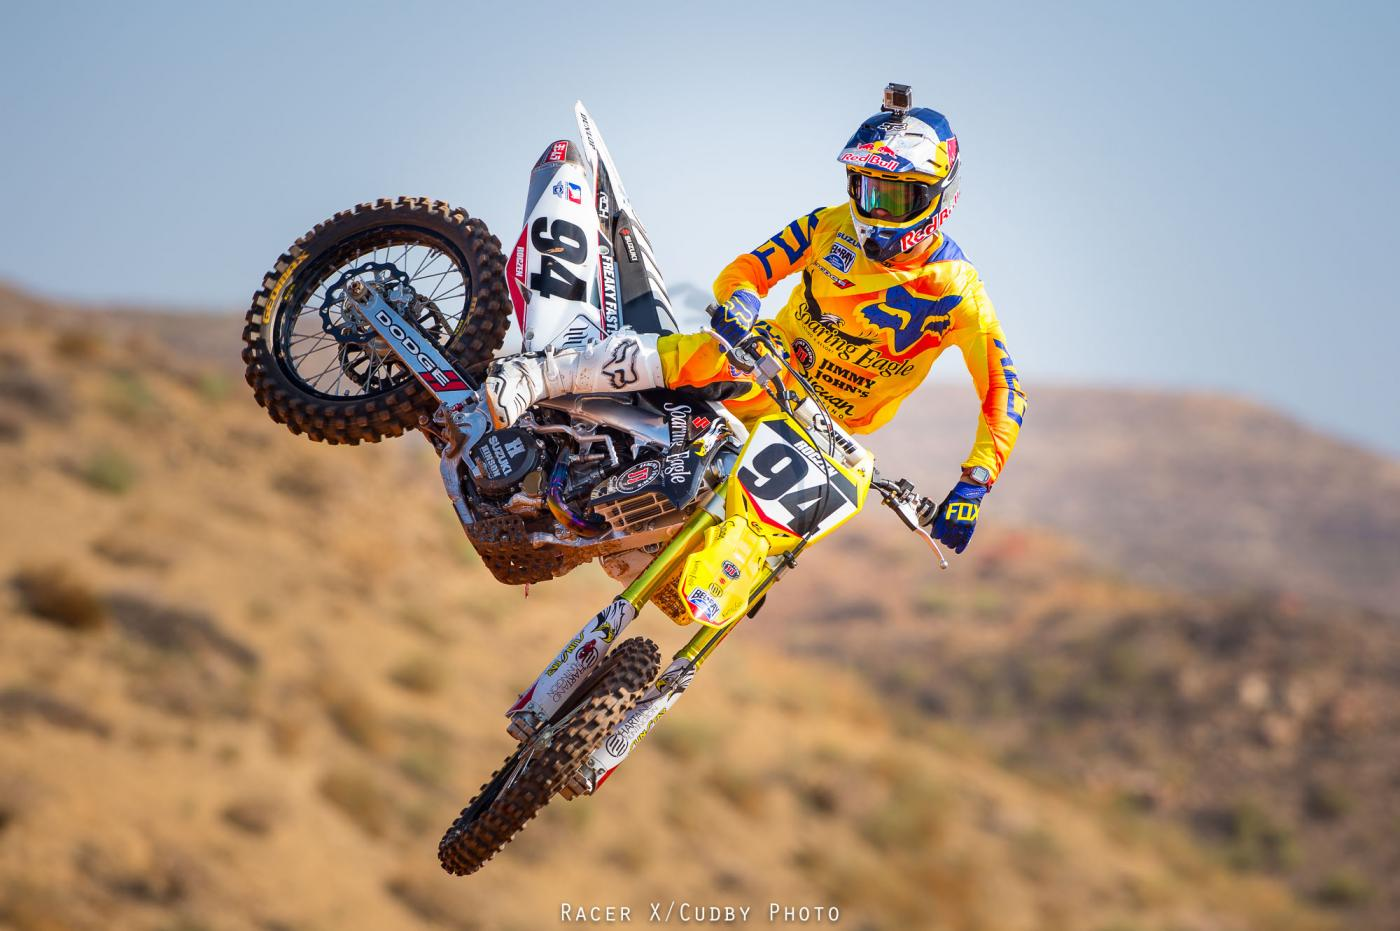 The 23-year old son of father (?) and mother(?), 170 cm tall Ken Roczen in 2018 photo